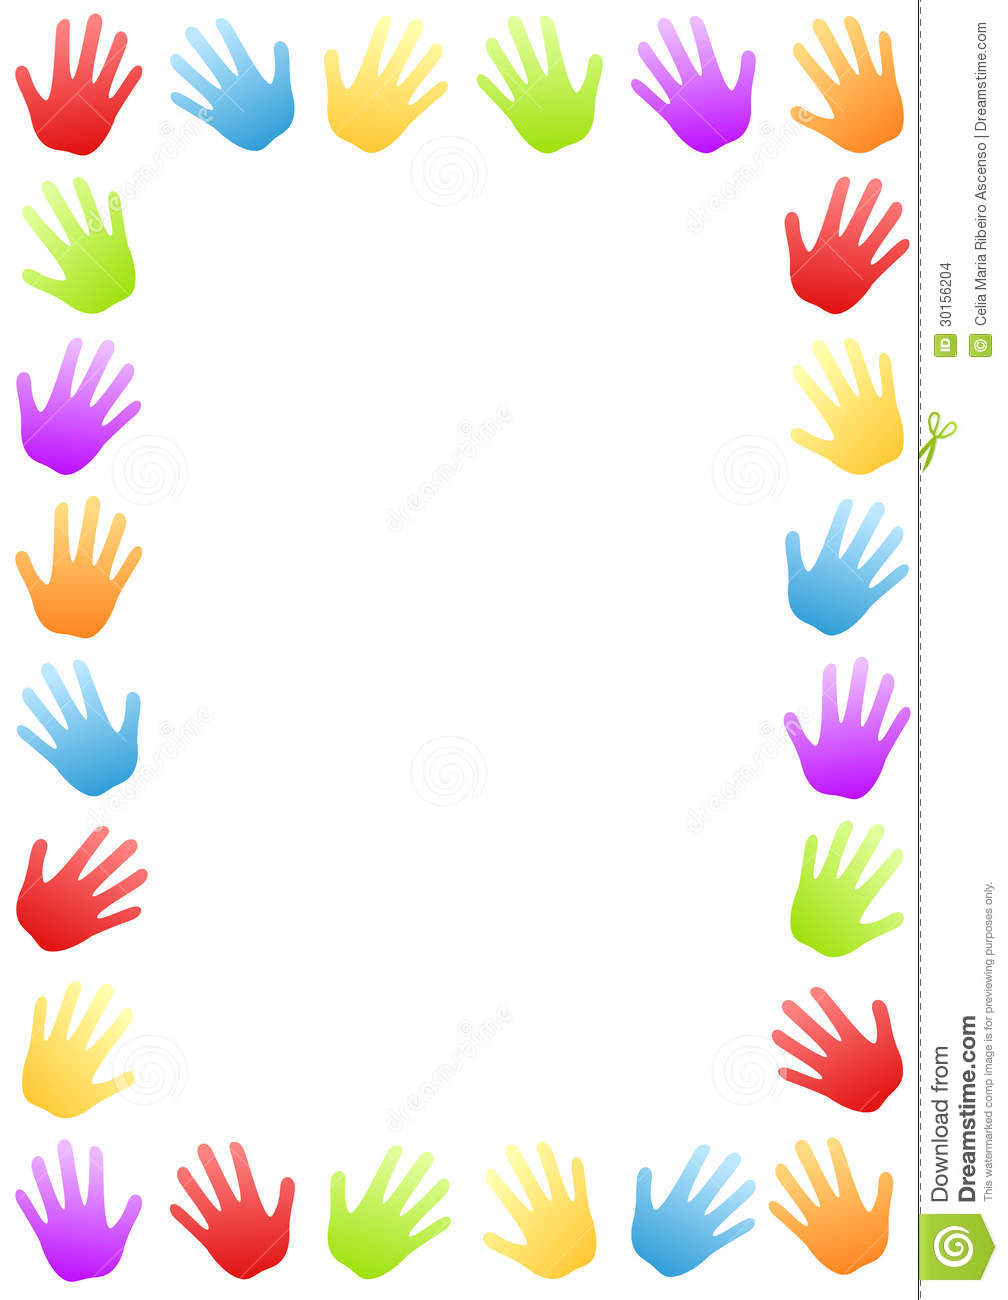 Colored Hands Border Frame Stock Images   Image  30156204